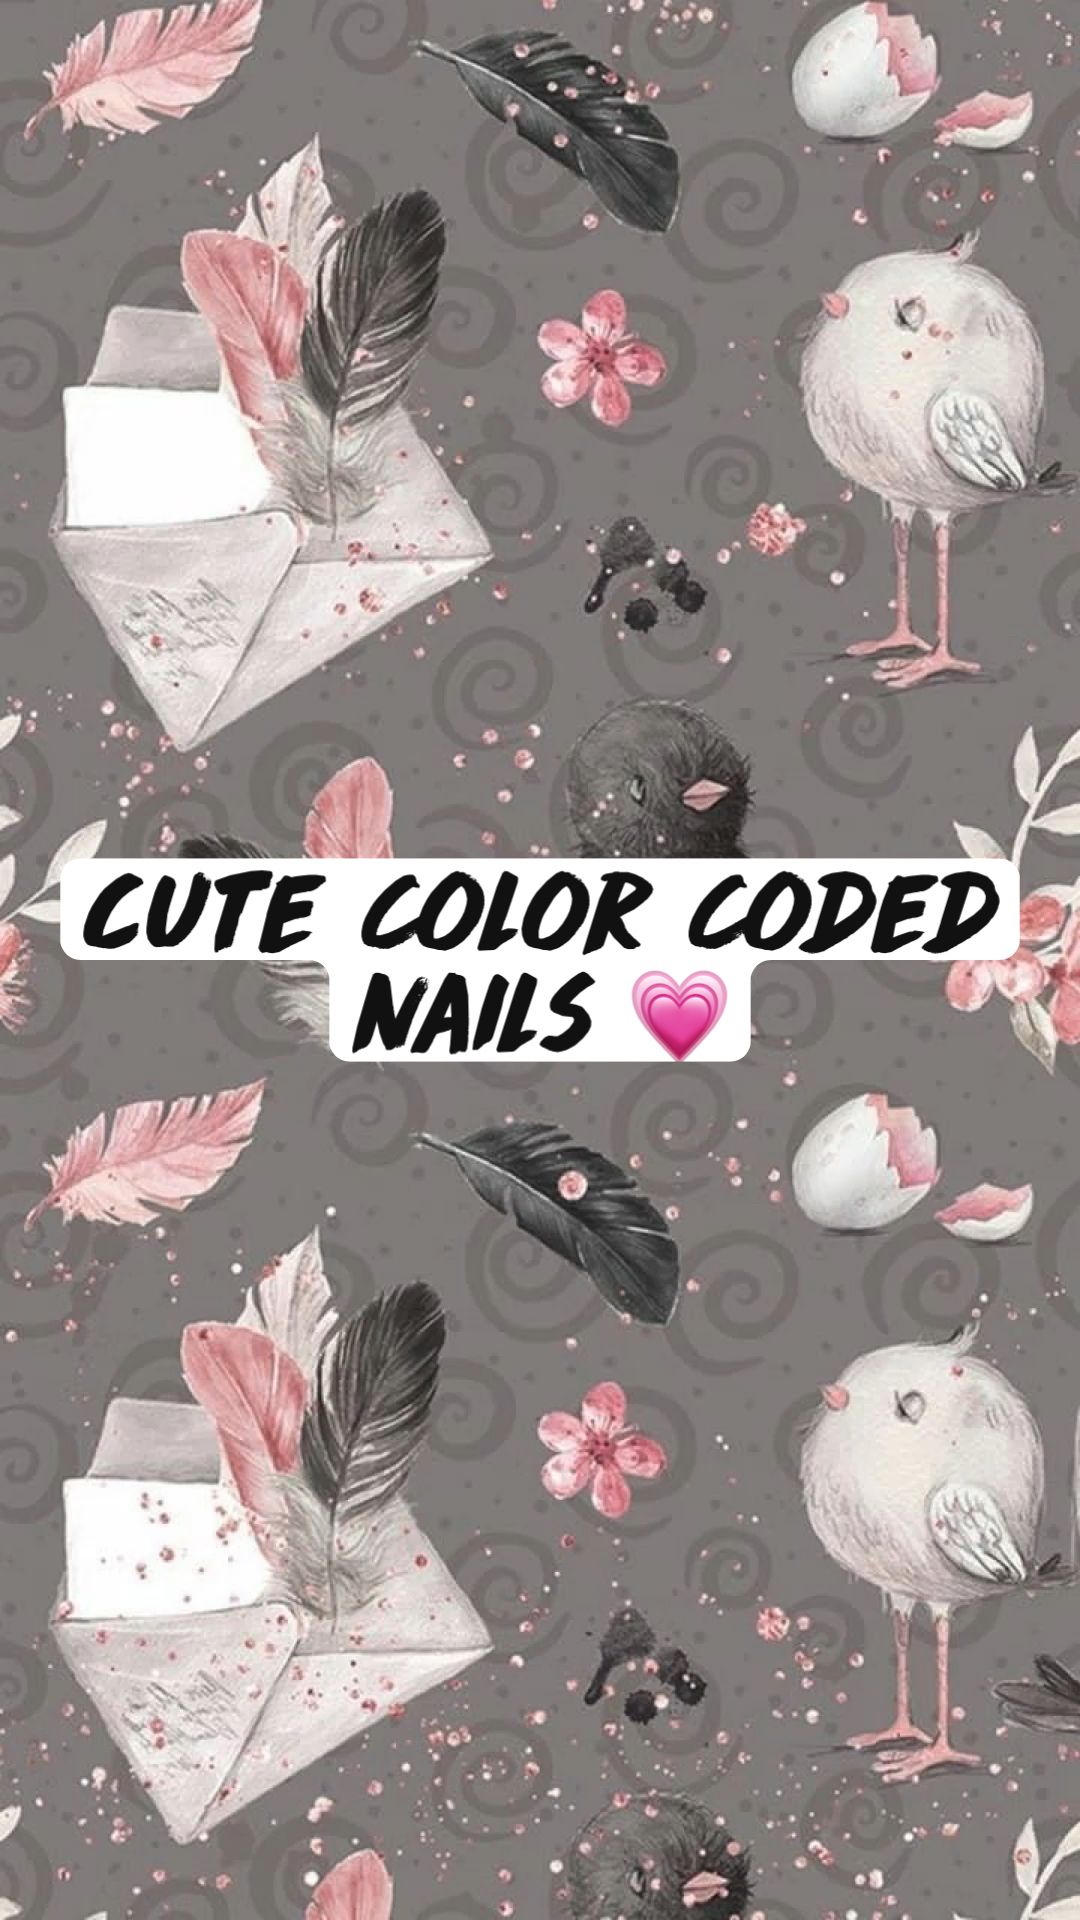 Cute Color Coded Nails 💗